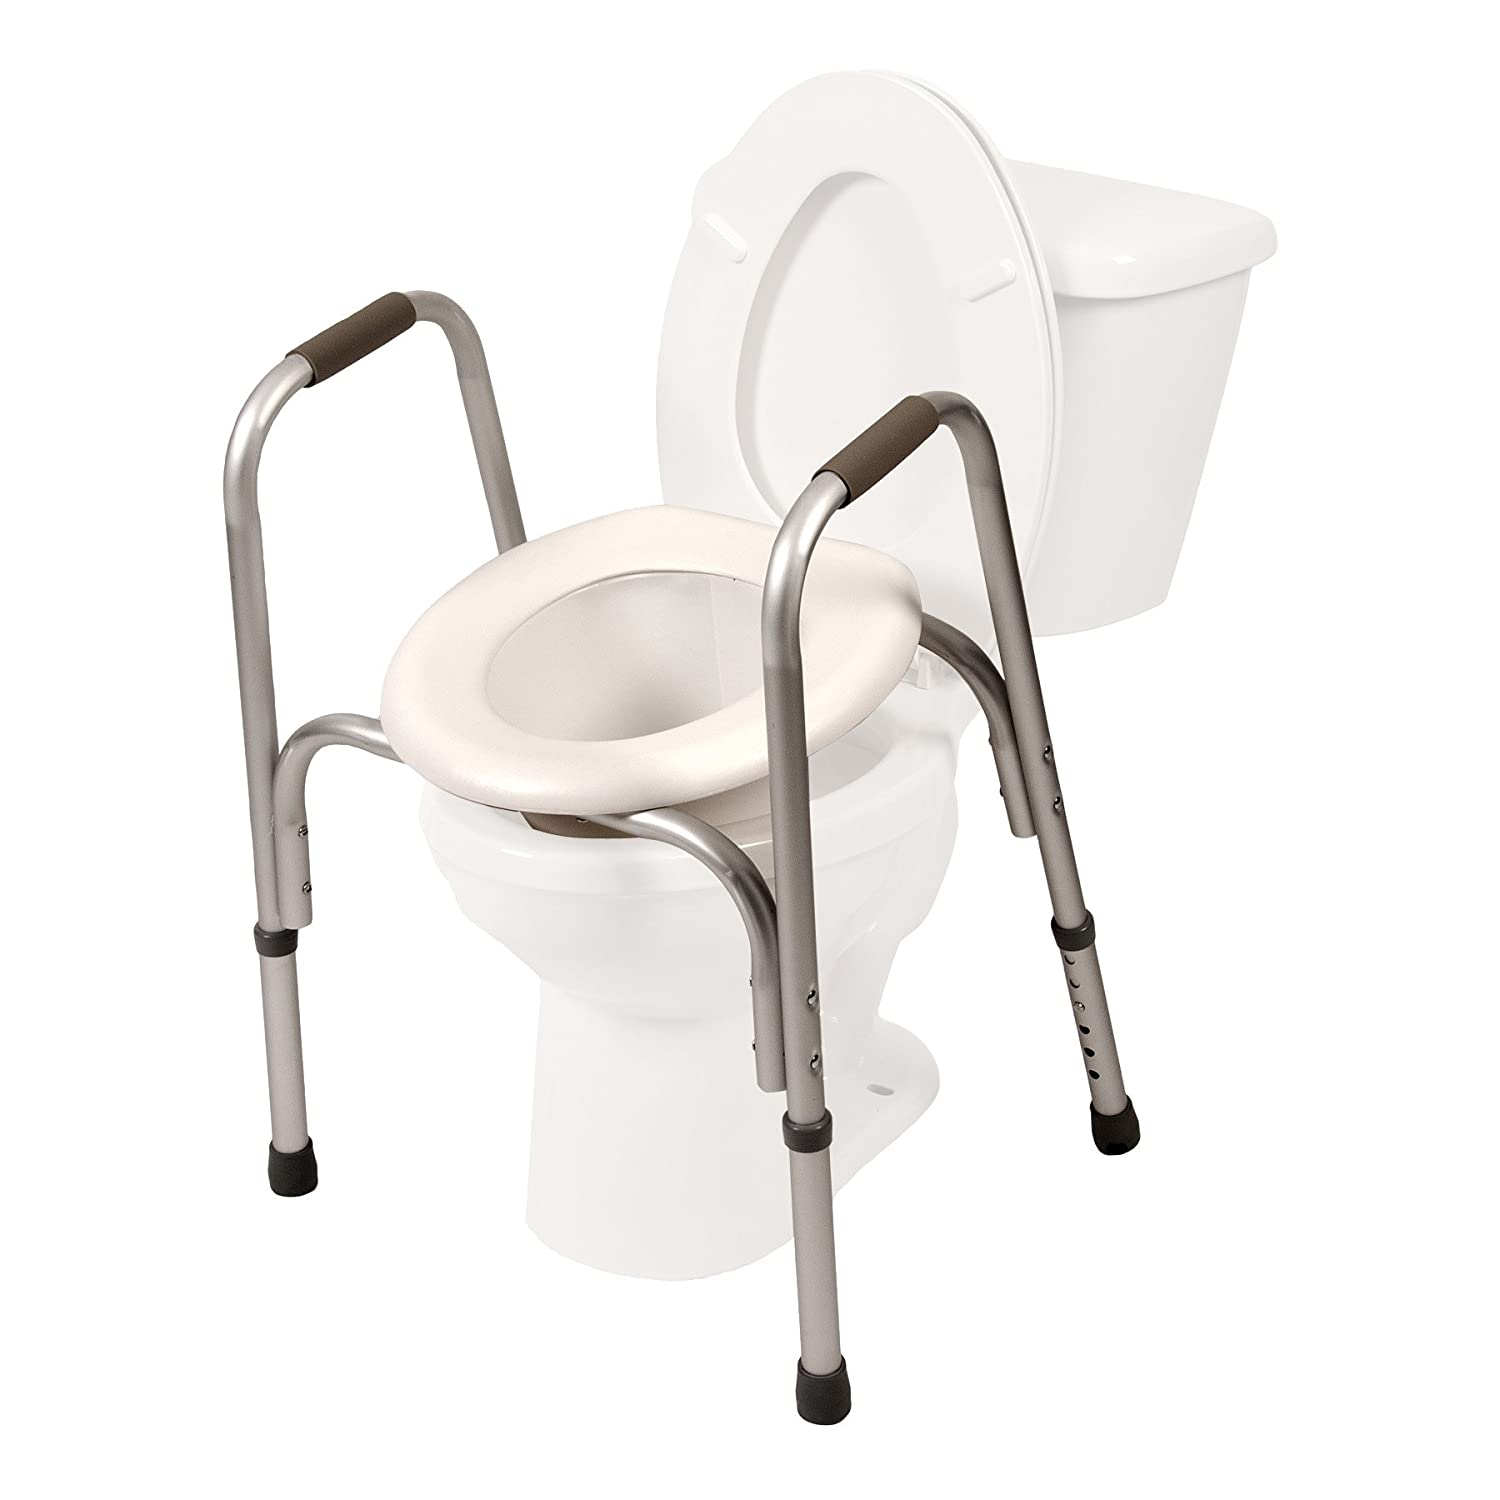 Top 10 Best Toilet Safety Frames And Rails Reviews 2018